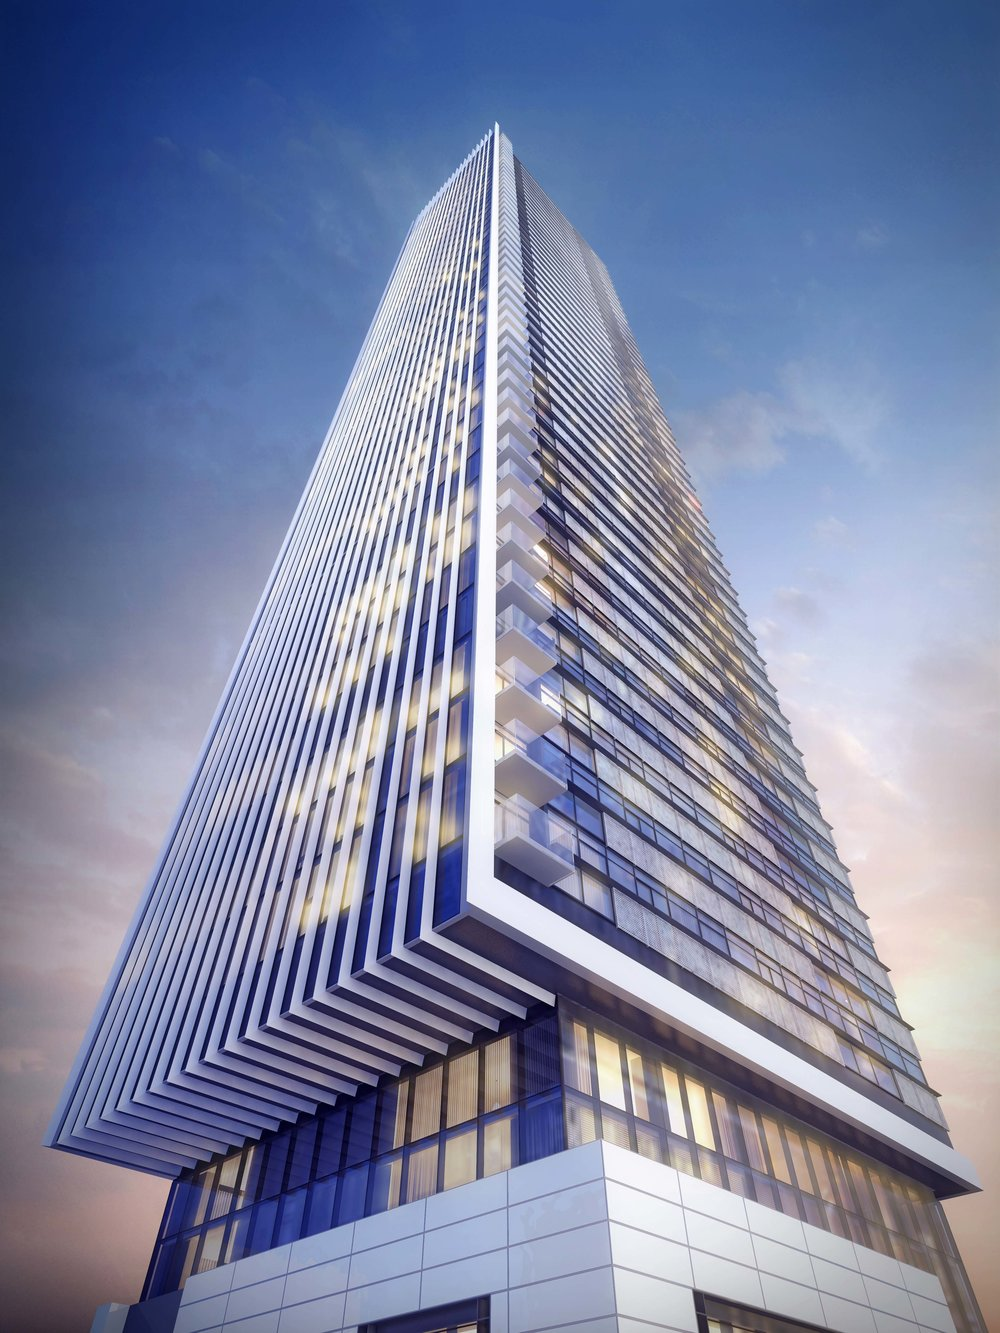 8Cumberland_renderings7_28 1 - Copy.jpg